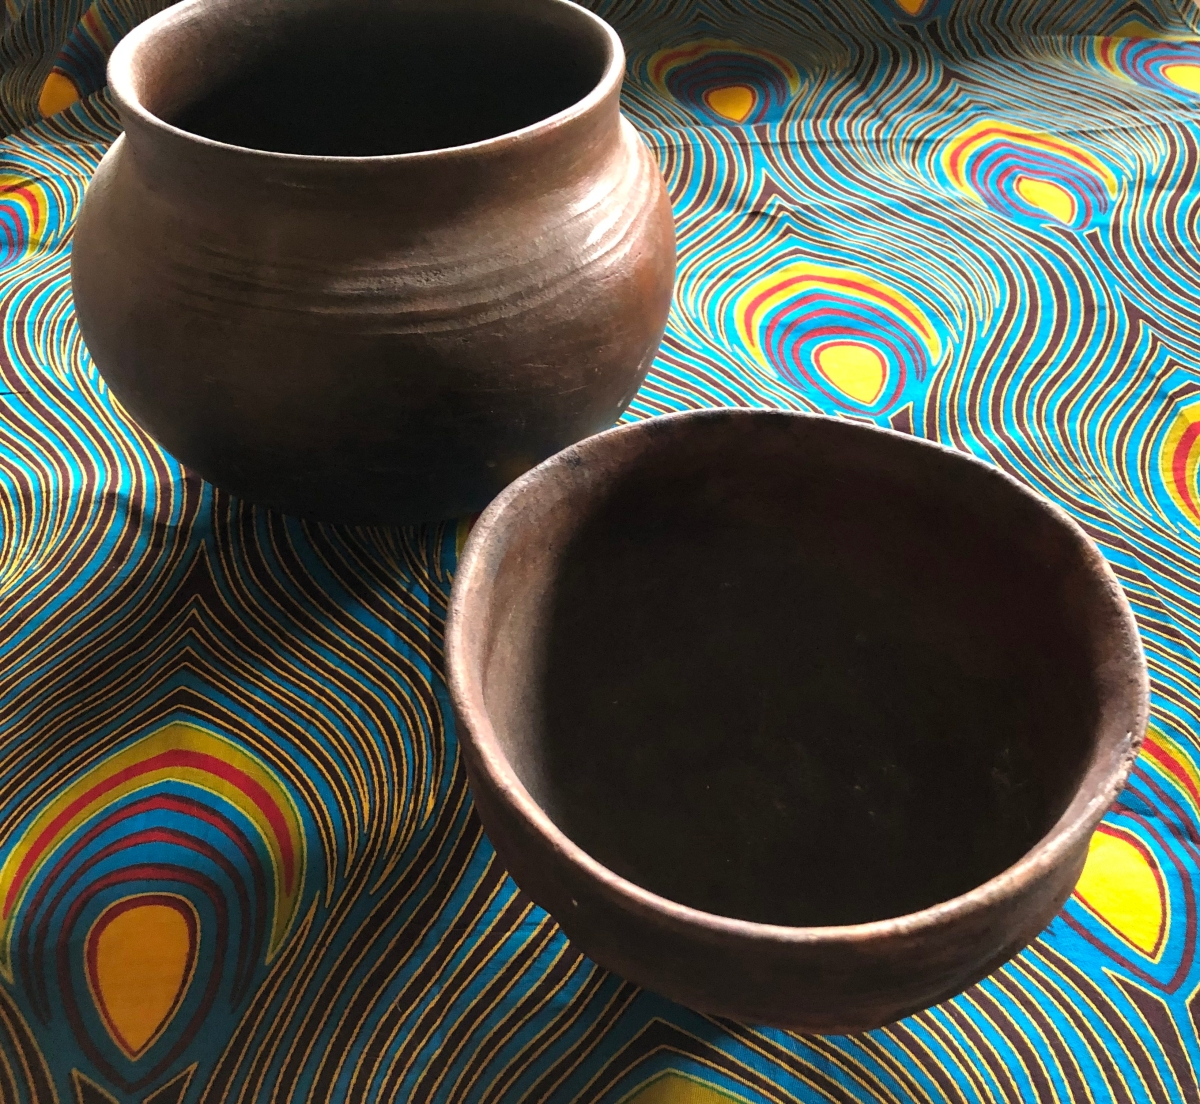 The Serendipity of the African Pots